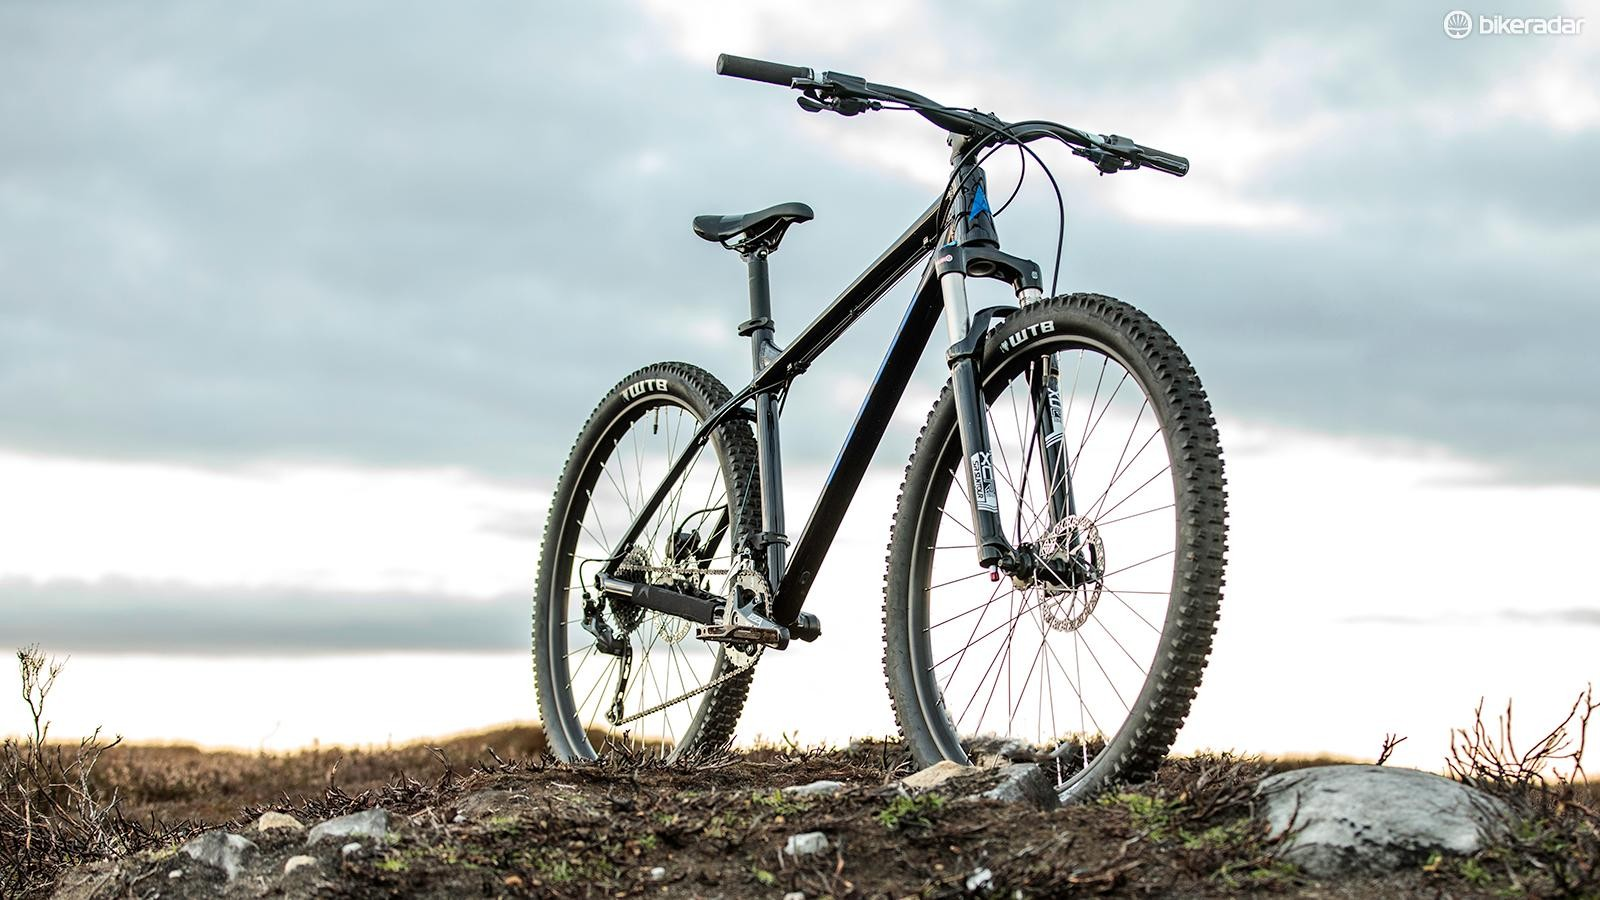 The tapered head tube makes future fork upgrades easy